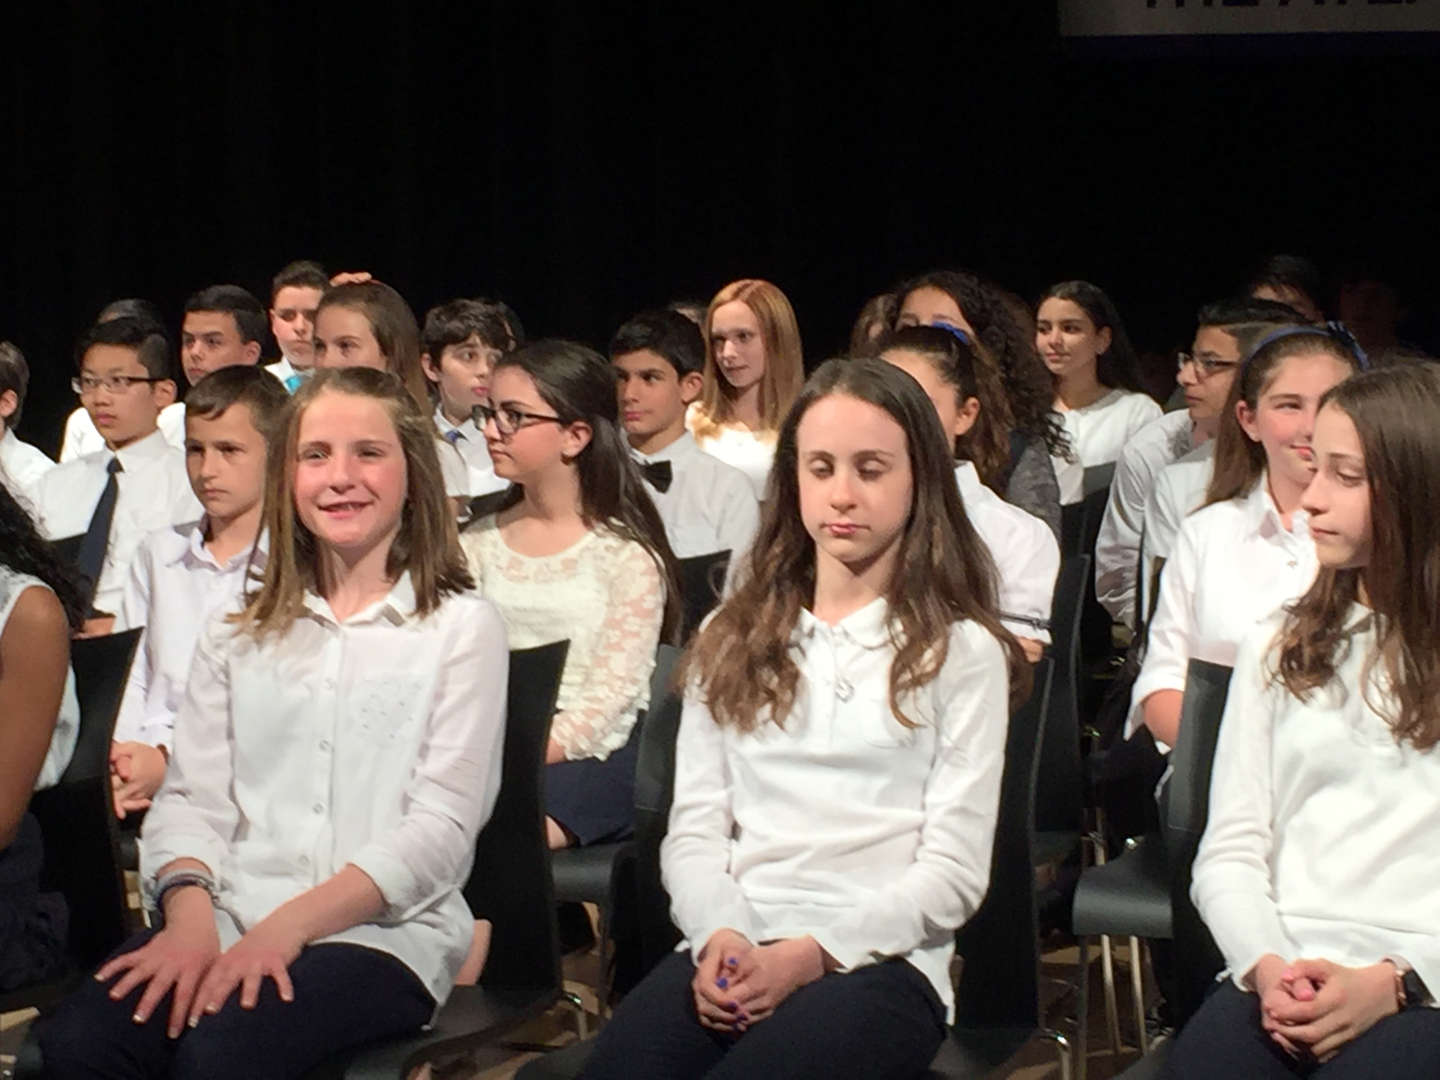 Middle School students at ceremony being inducted into the National Junior Honors Society